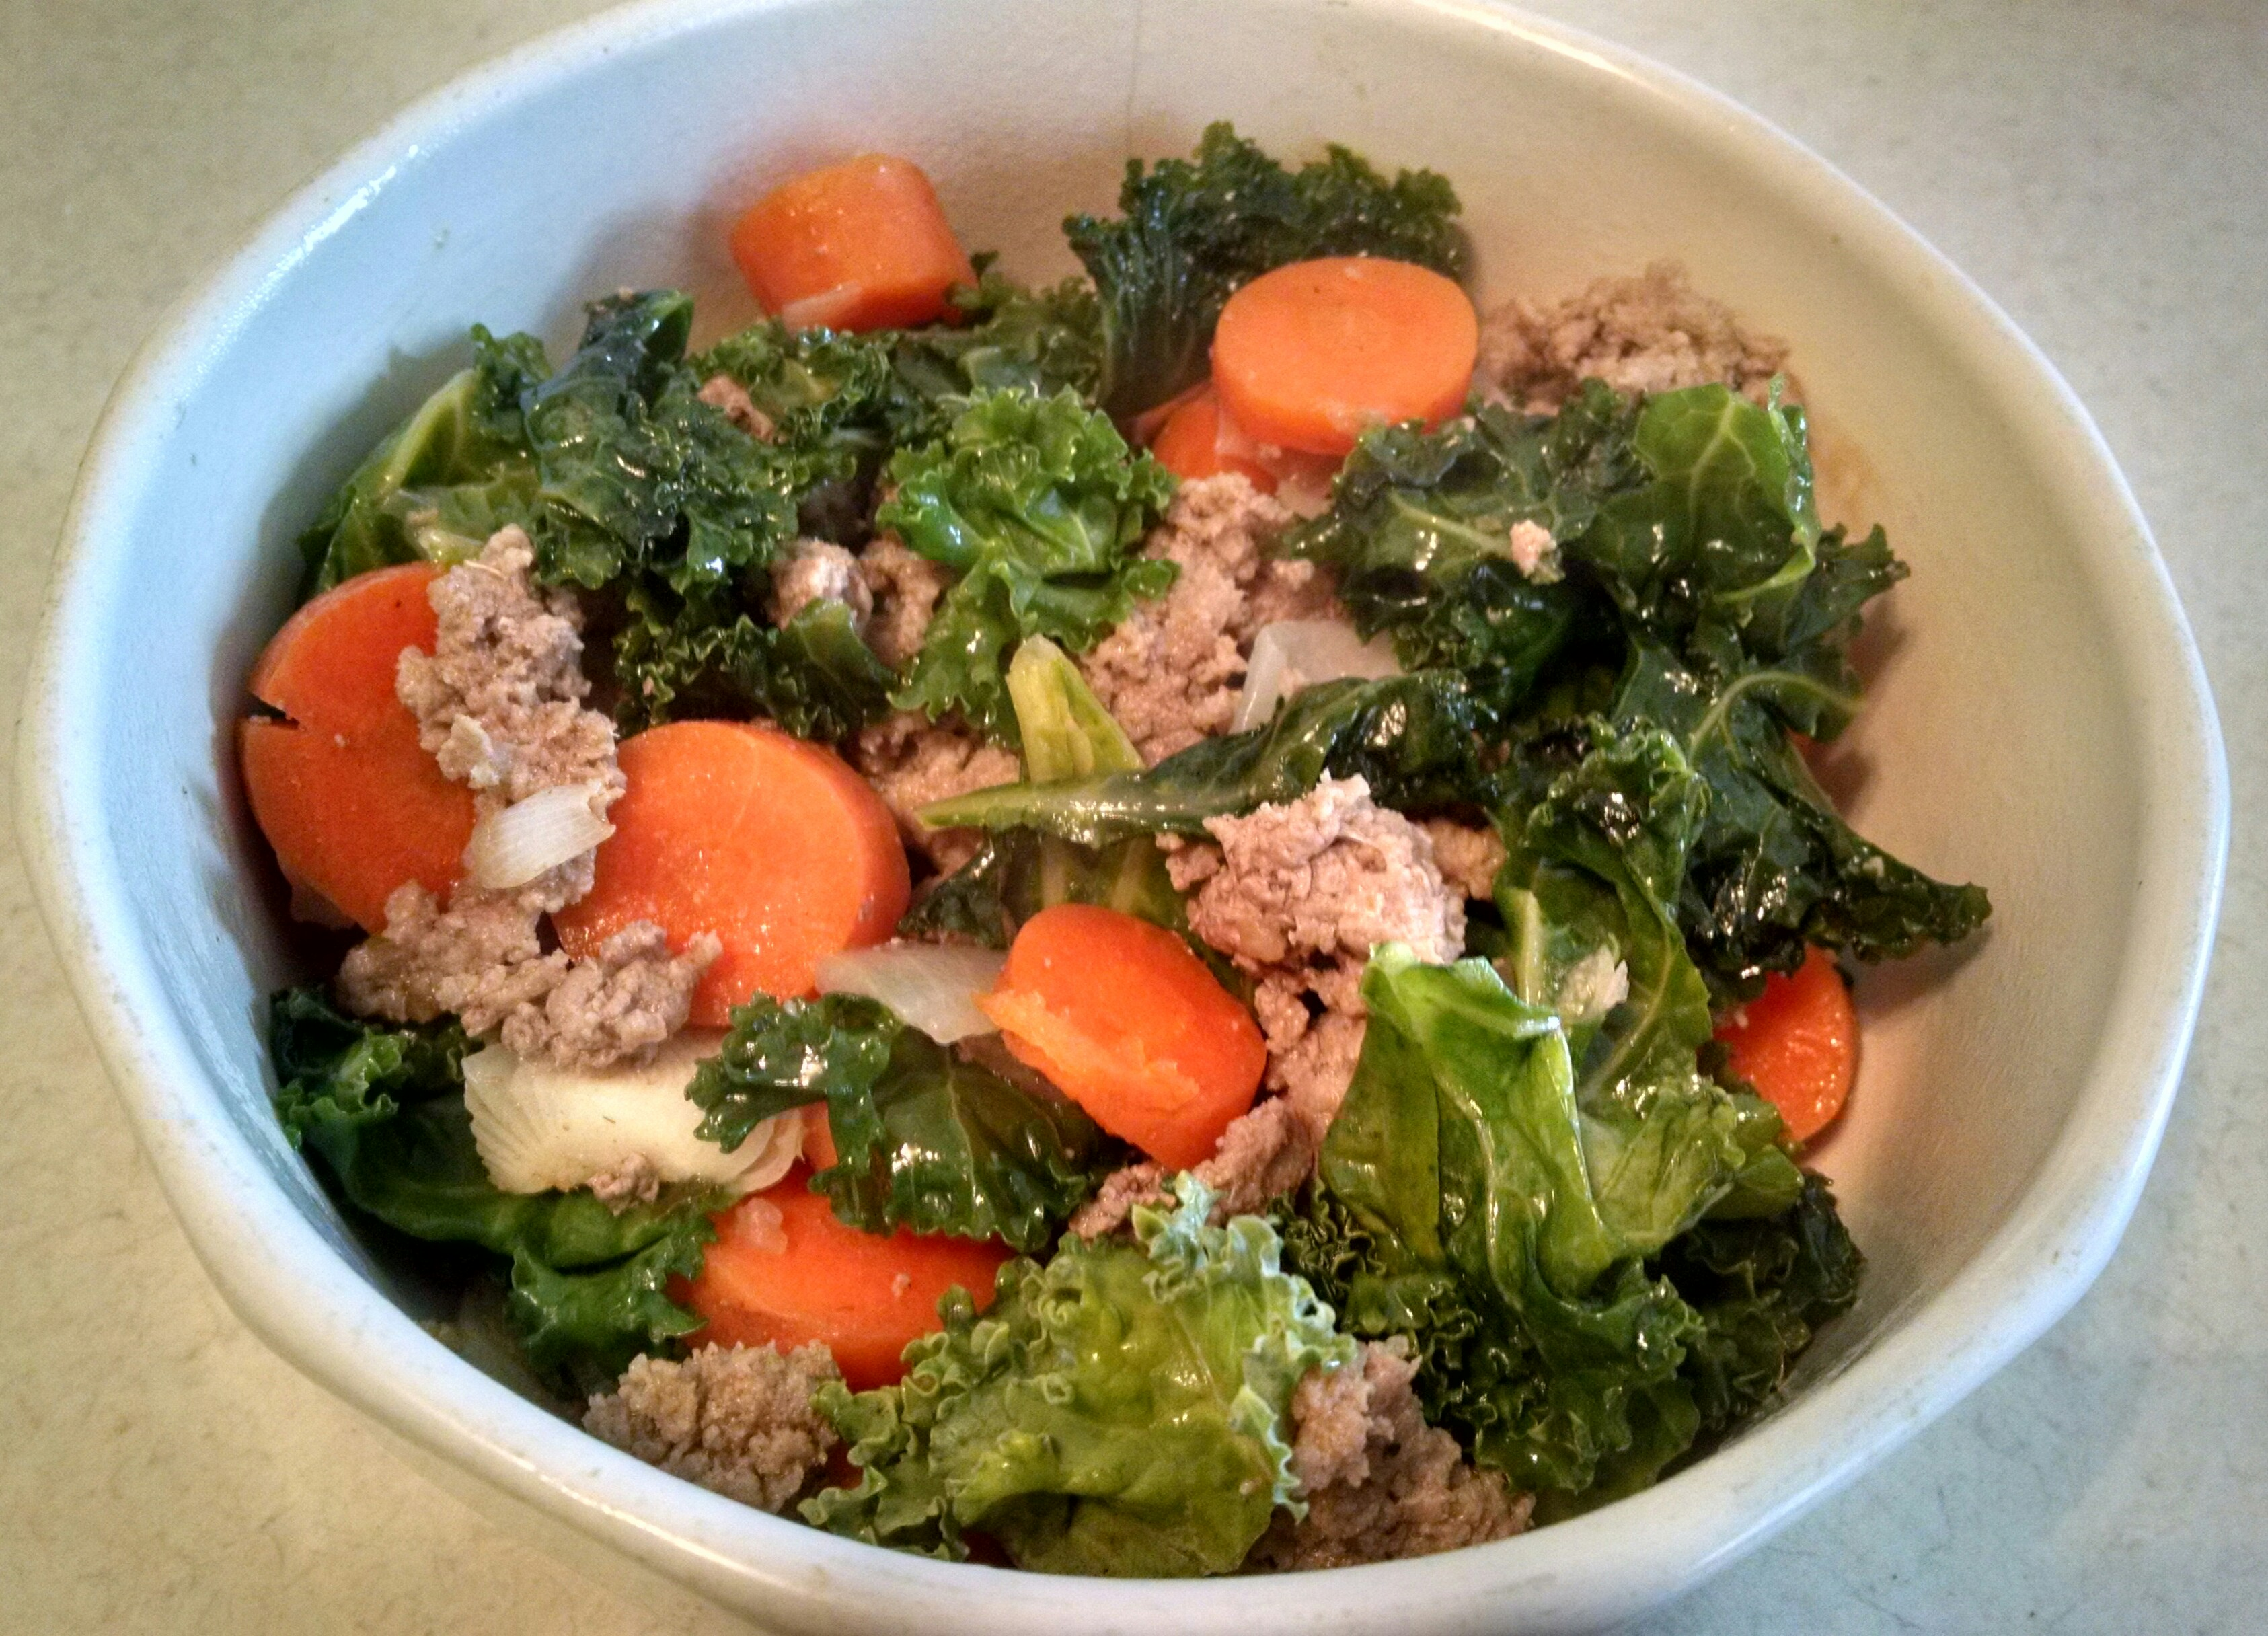 ... tomatoes and kale the perfect pantry turkey and kale fried rice recipe